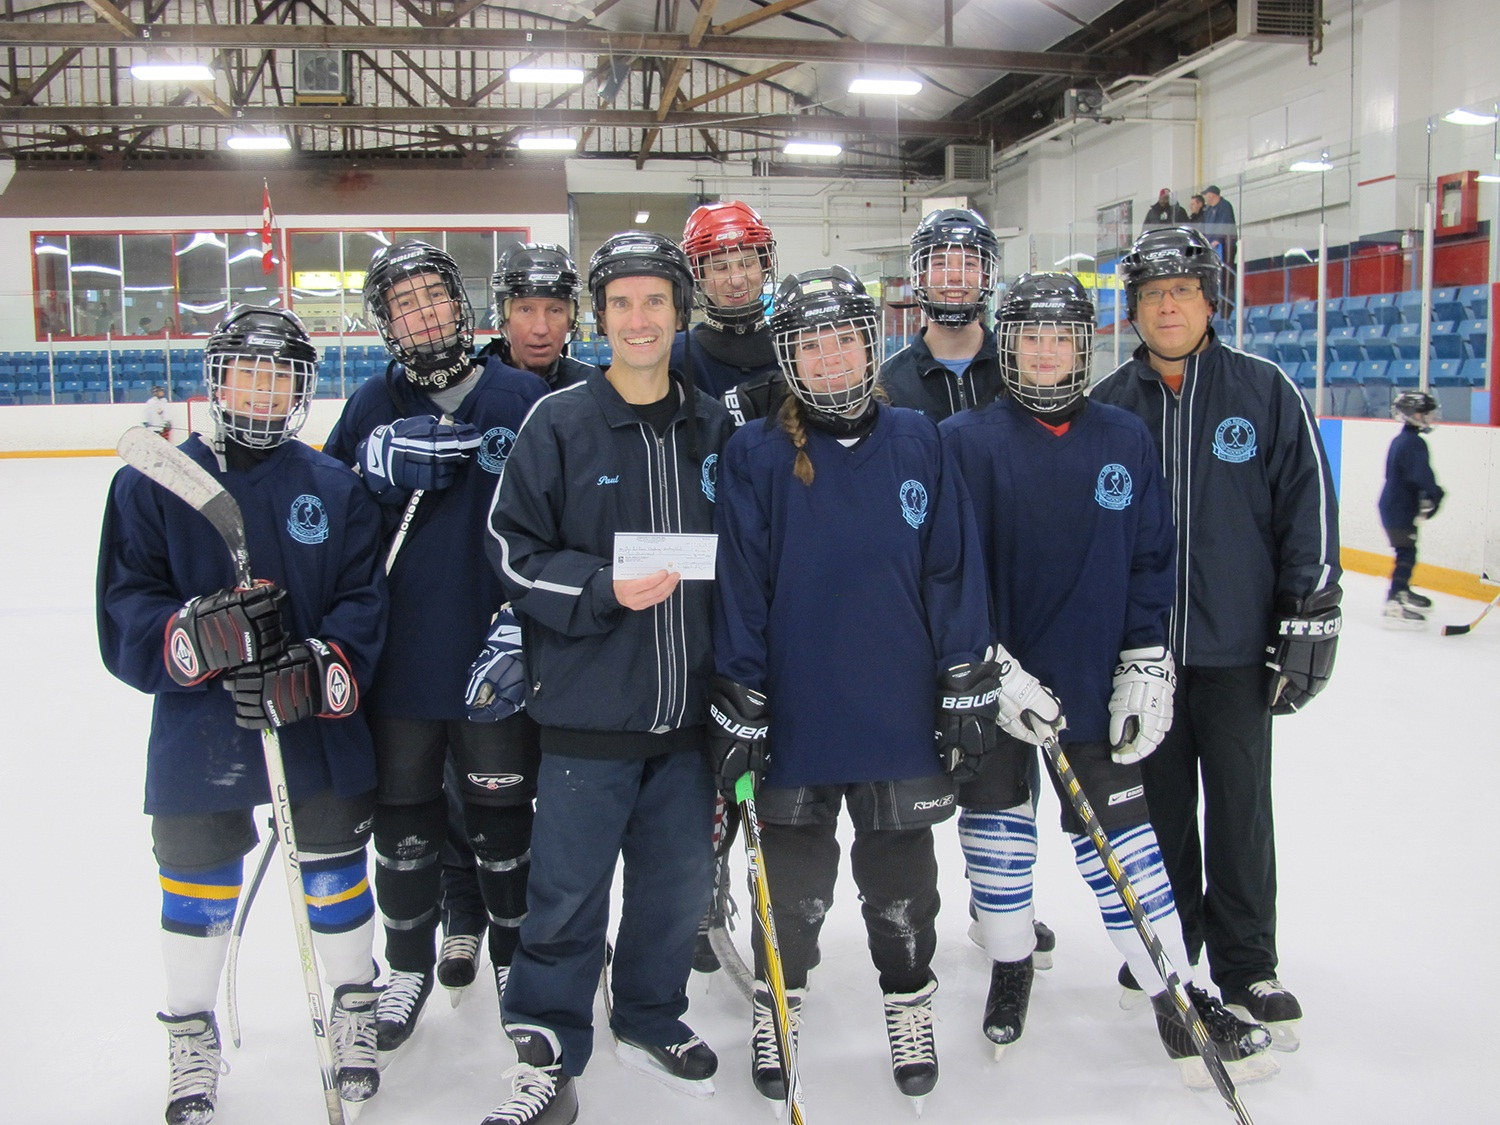 Happy Holidays from all of us at Ted Reeve Skating Hockey School!